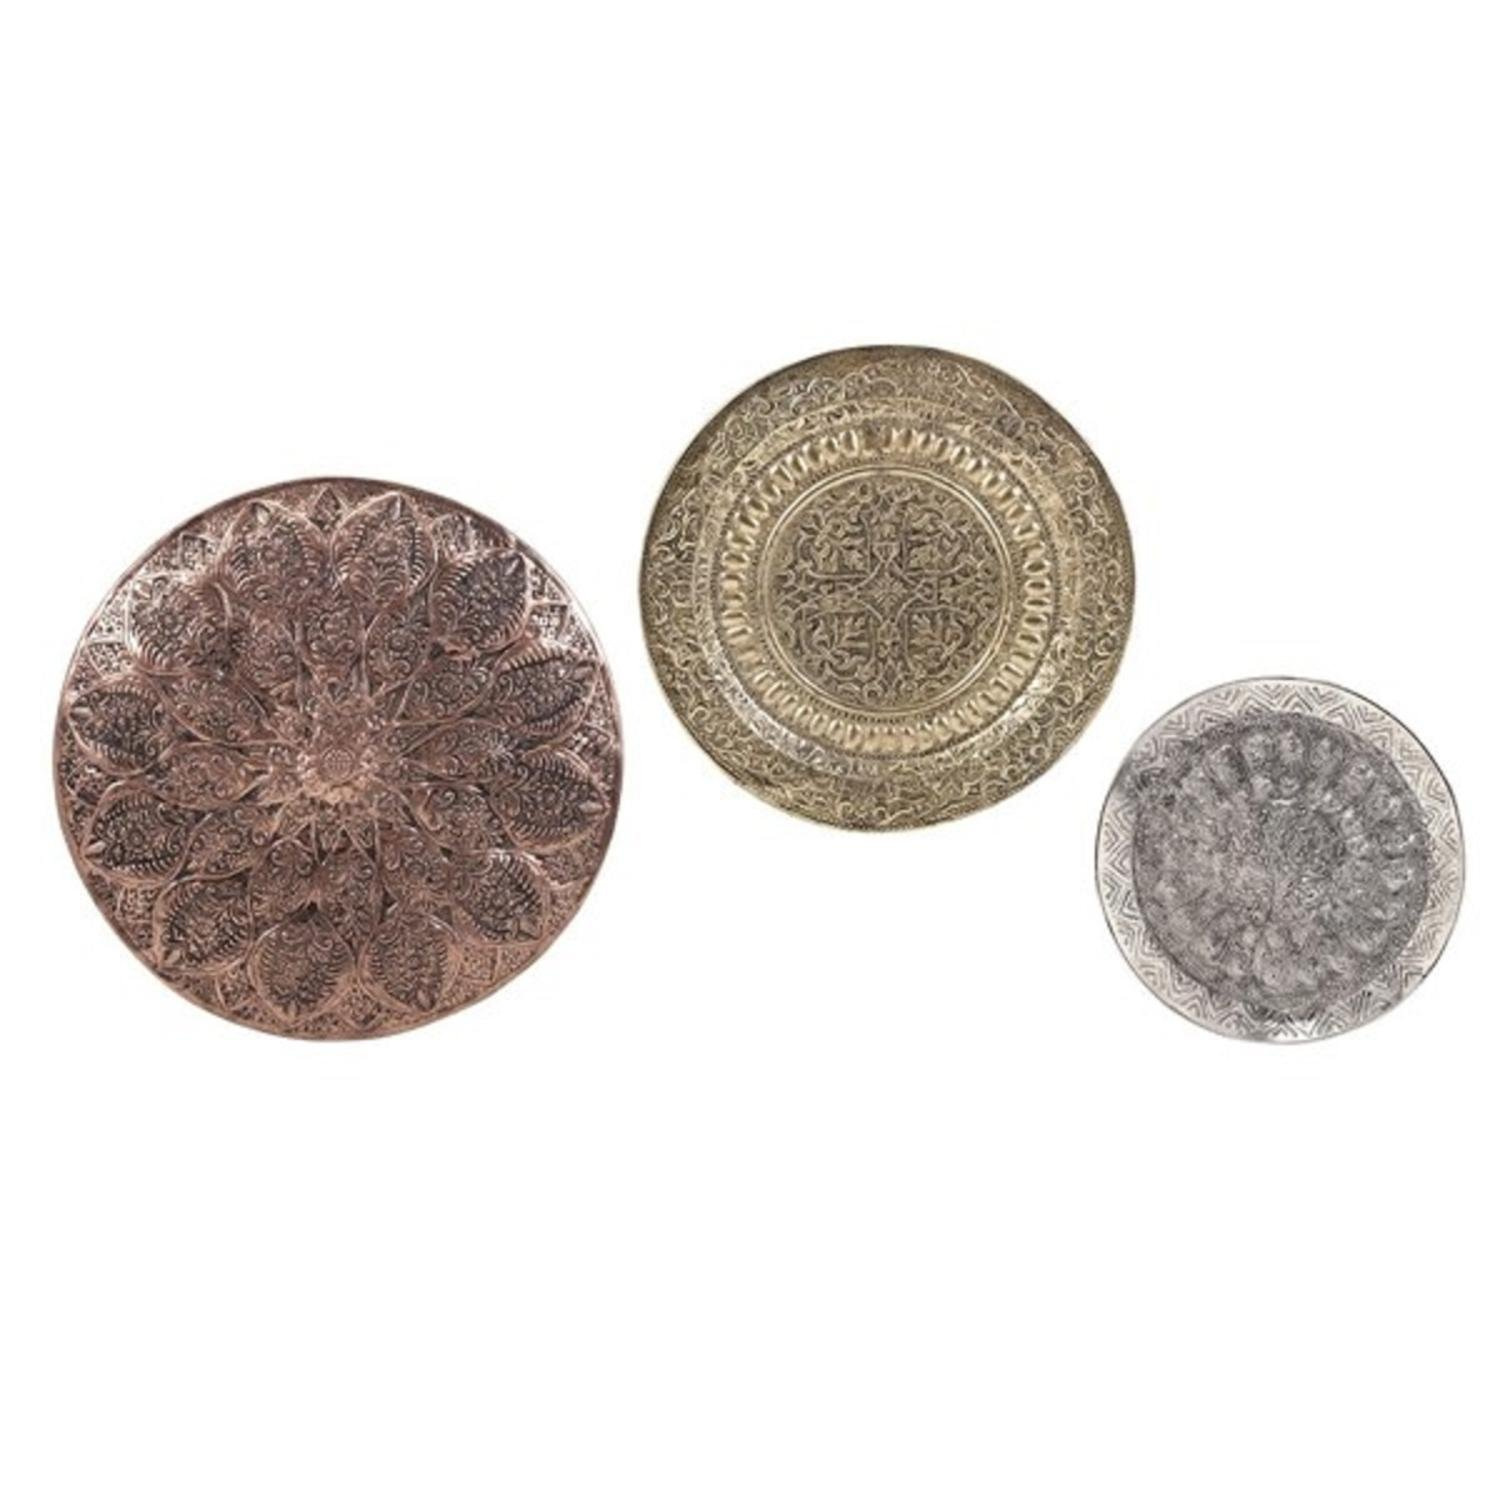 CC Home Furnishings Set of 3 Copper, Gold and Silver Decorative Patterned Aluminum Wall Chargers